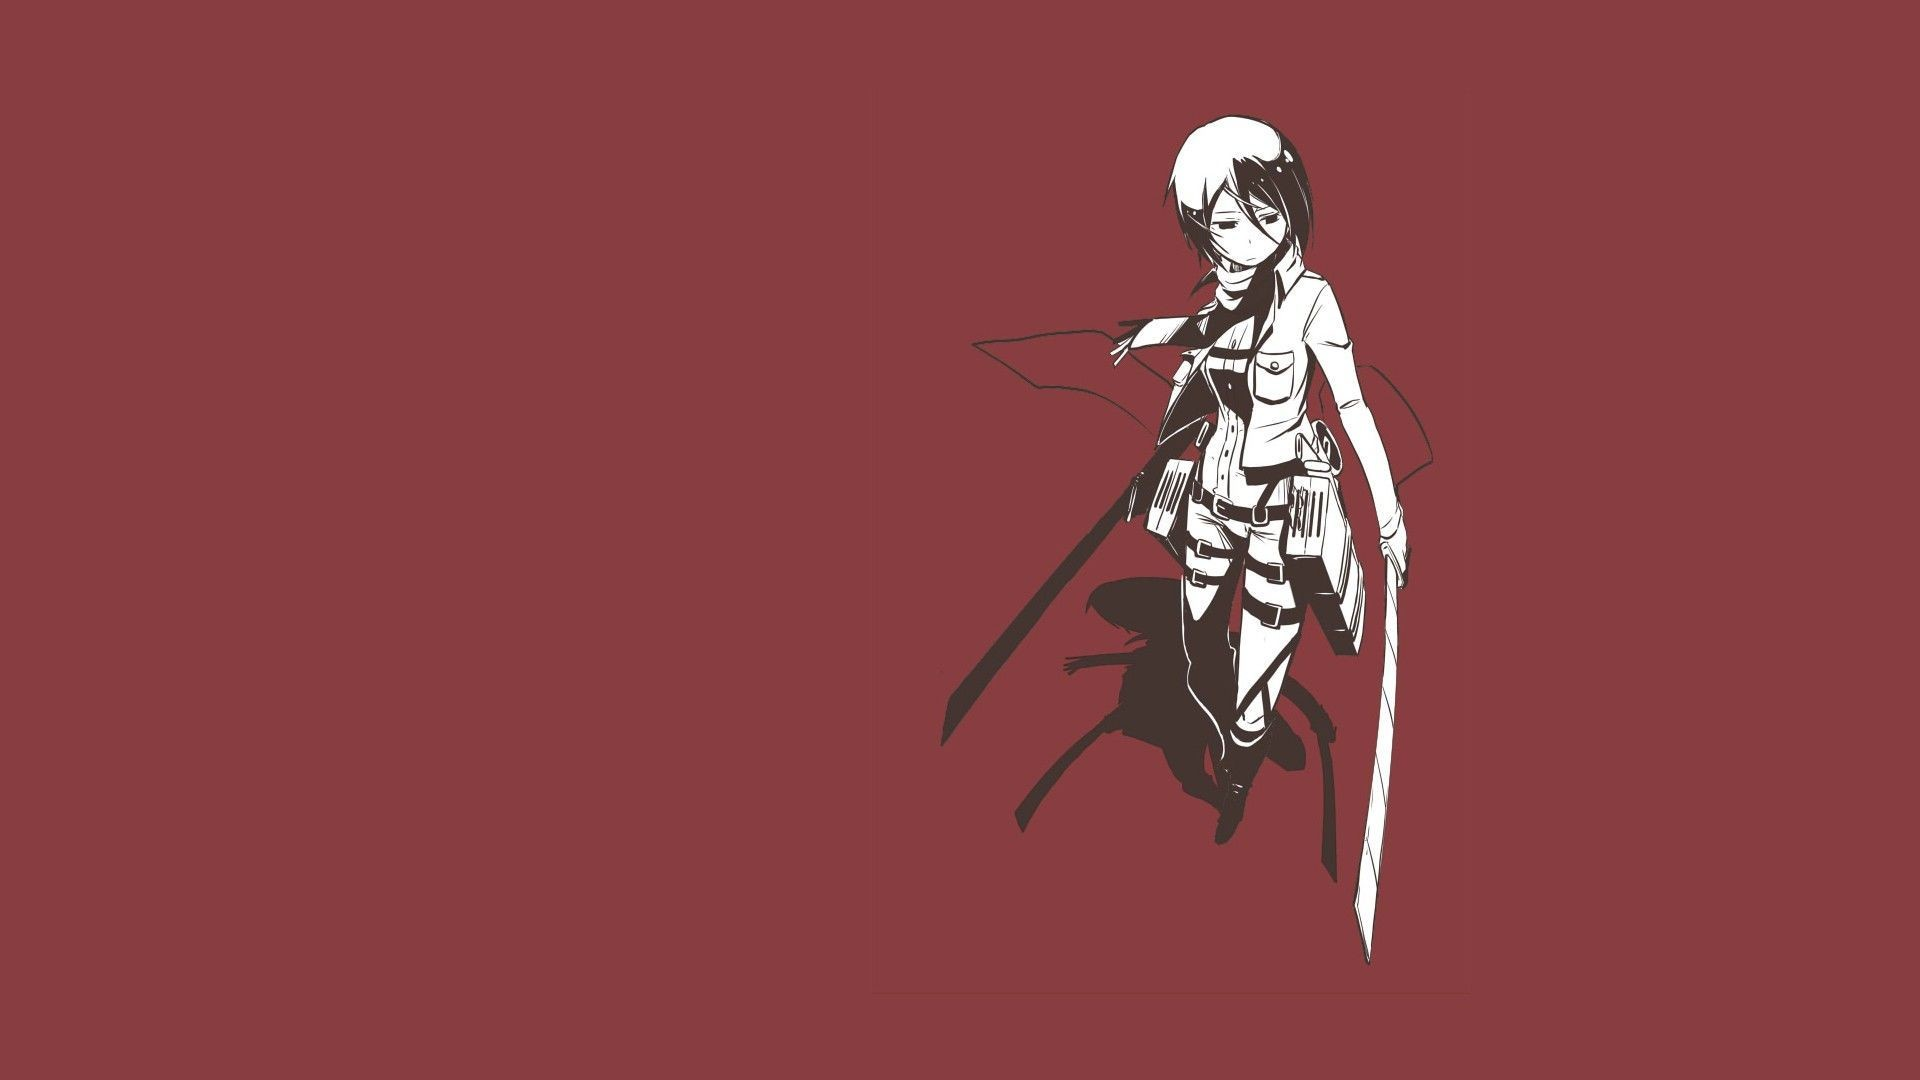 1920x1080 Attack on Titan HD Wallpaper